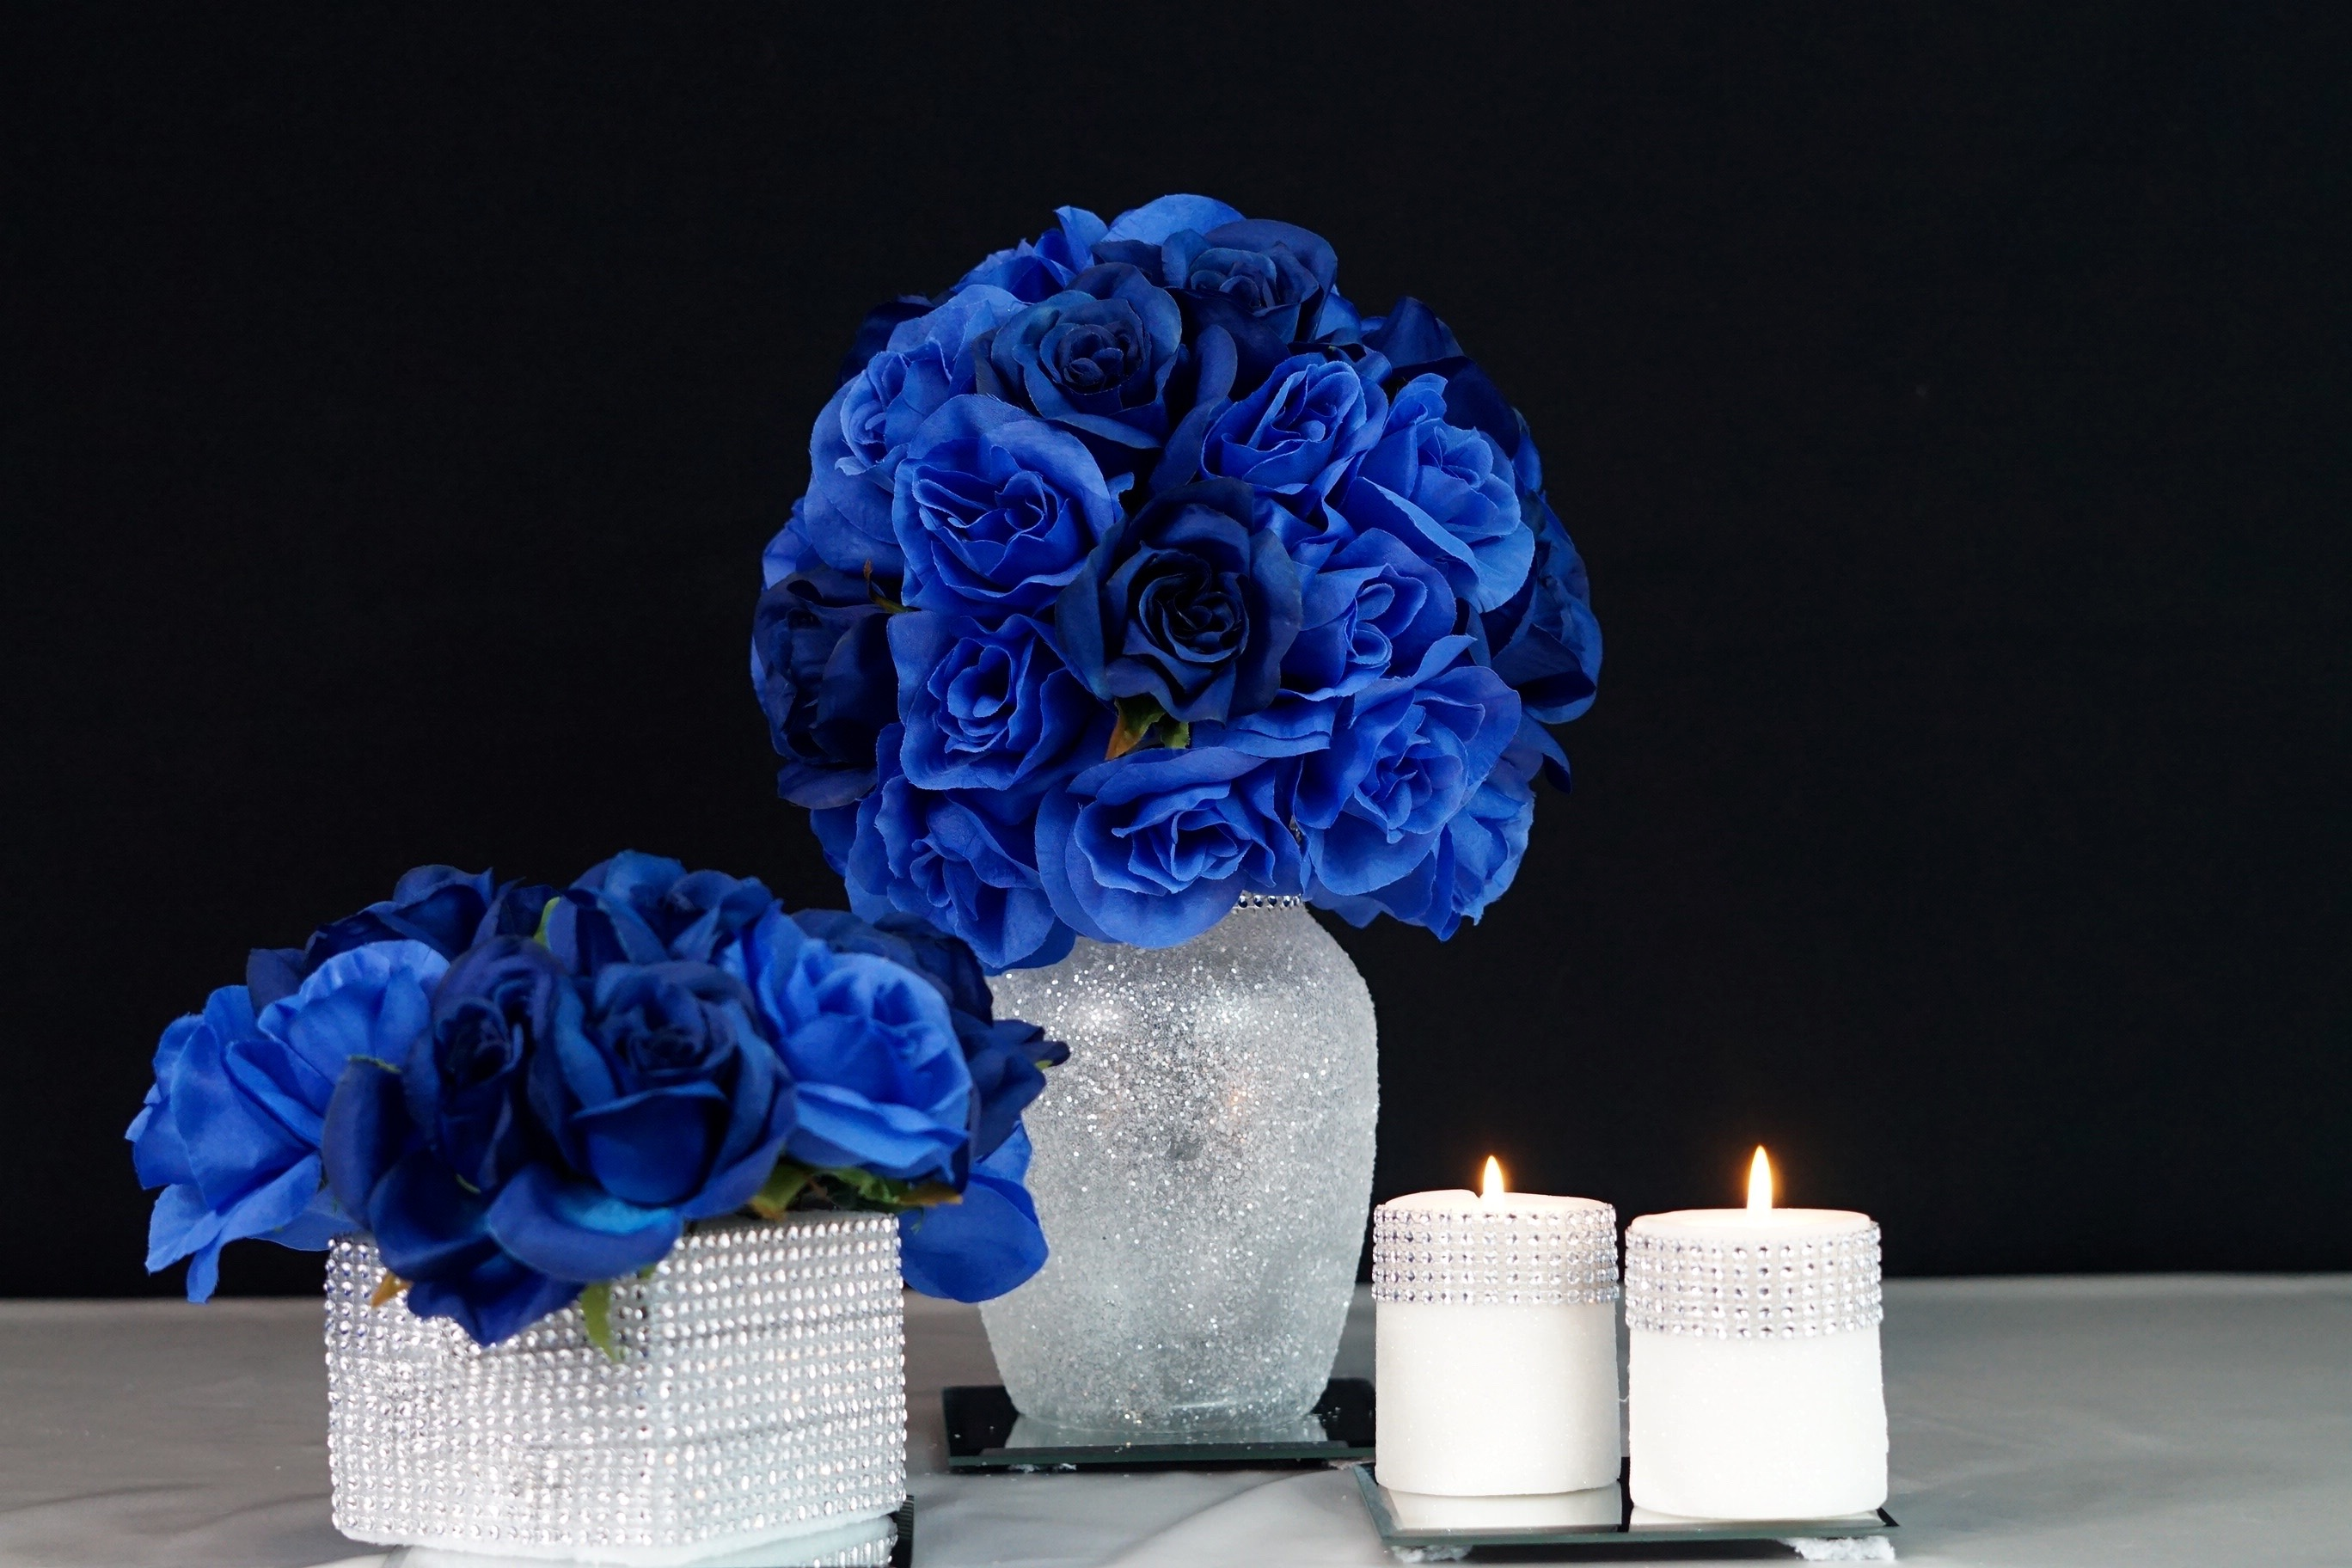 3 royal blue wedding or quincenera centerpiece ideas for under 10 junglespirit Image collections